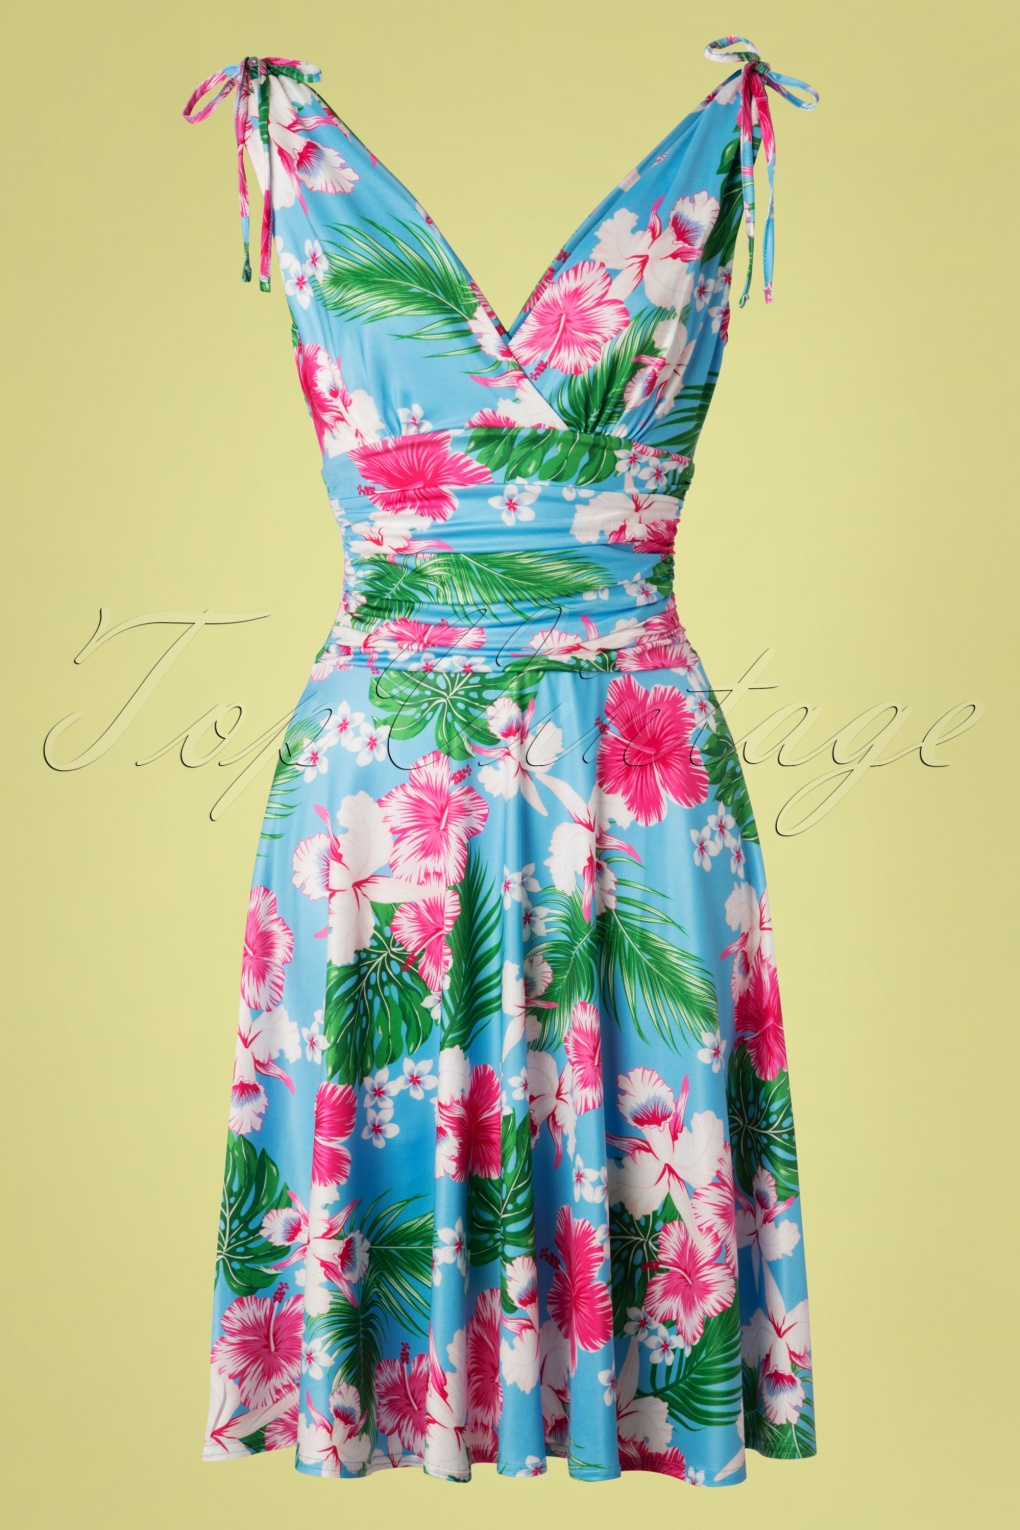 New Fifties Dresses | 50s Inspired Dresses 50s Grecian Hawaii Dress in Sky Blue £33.12 AT vintagedancer.com